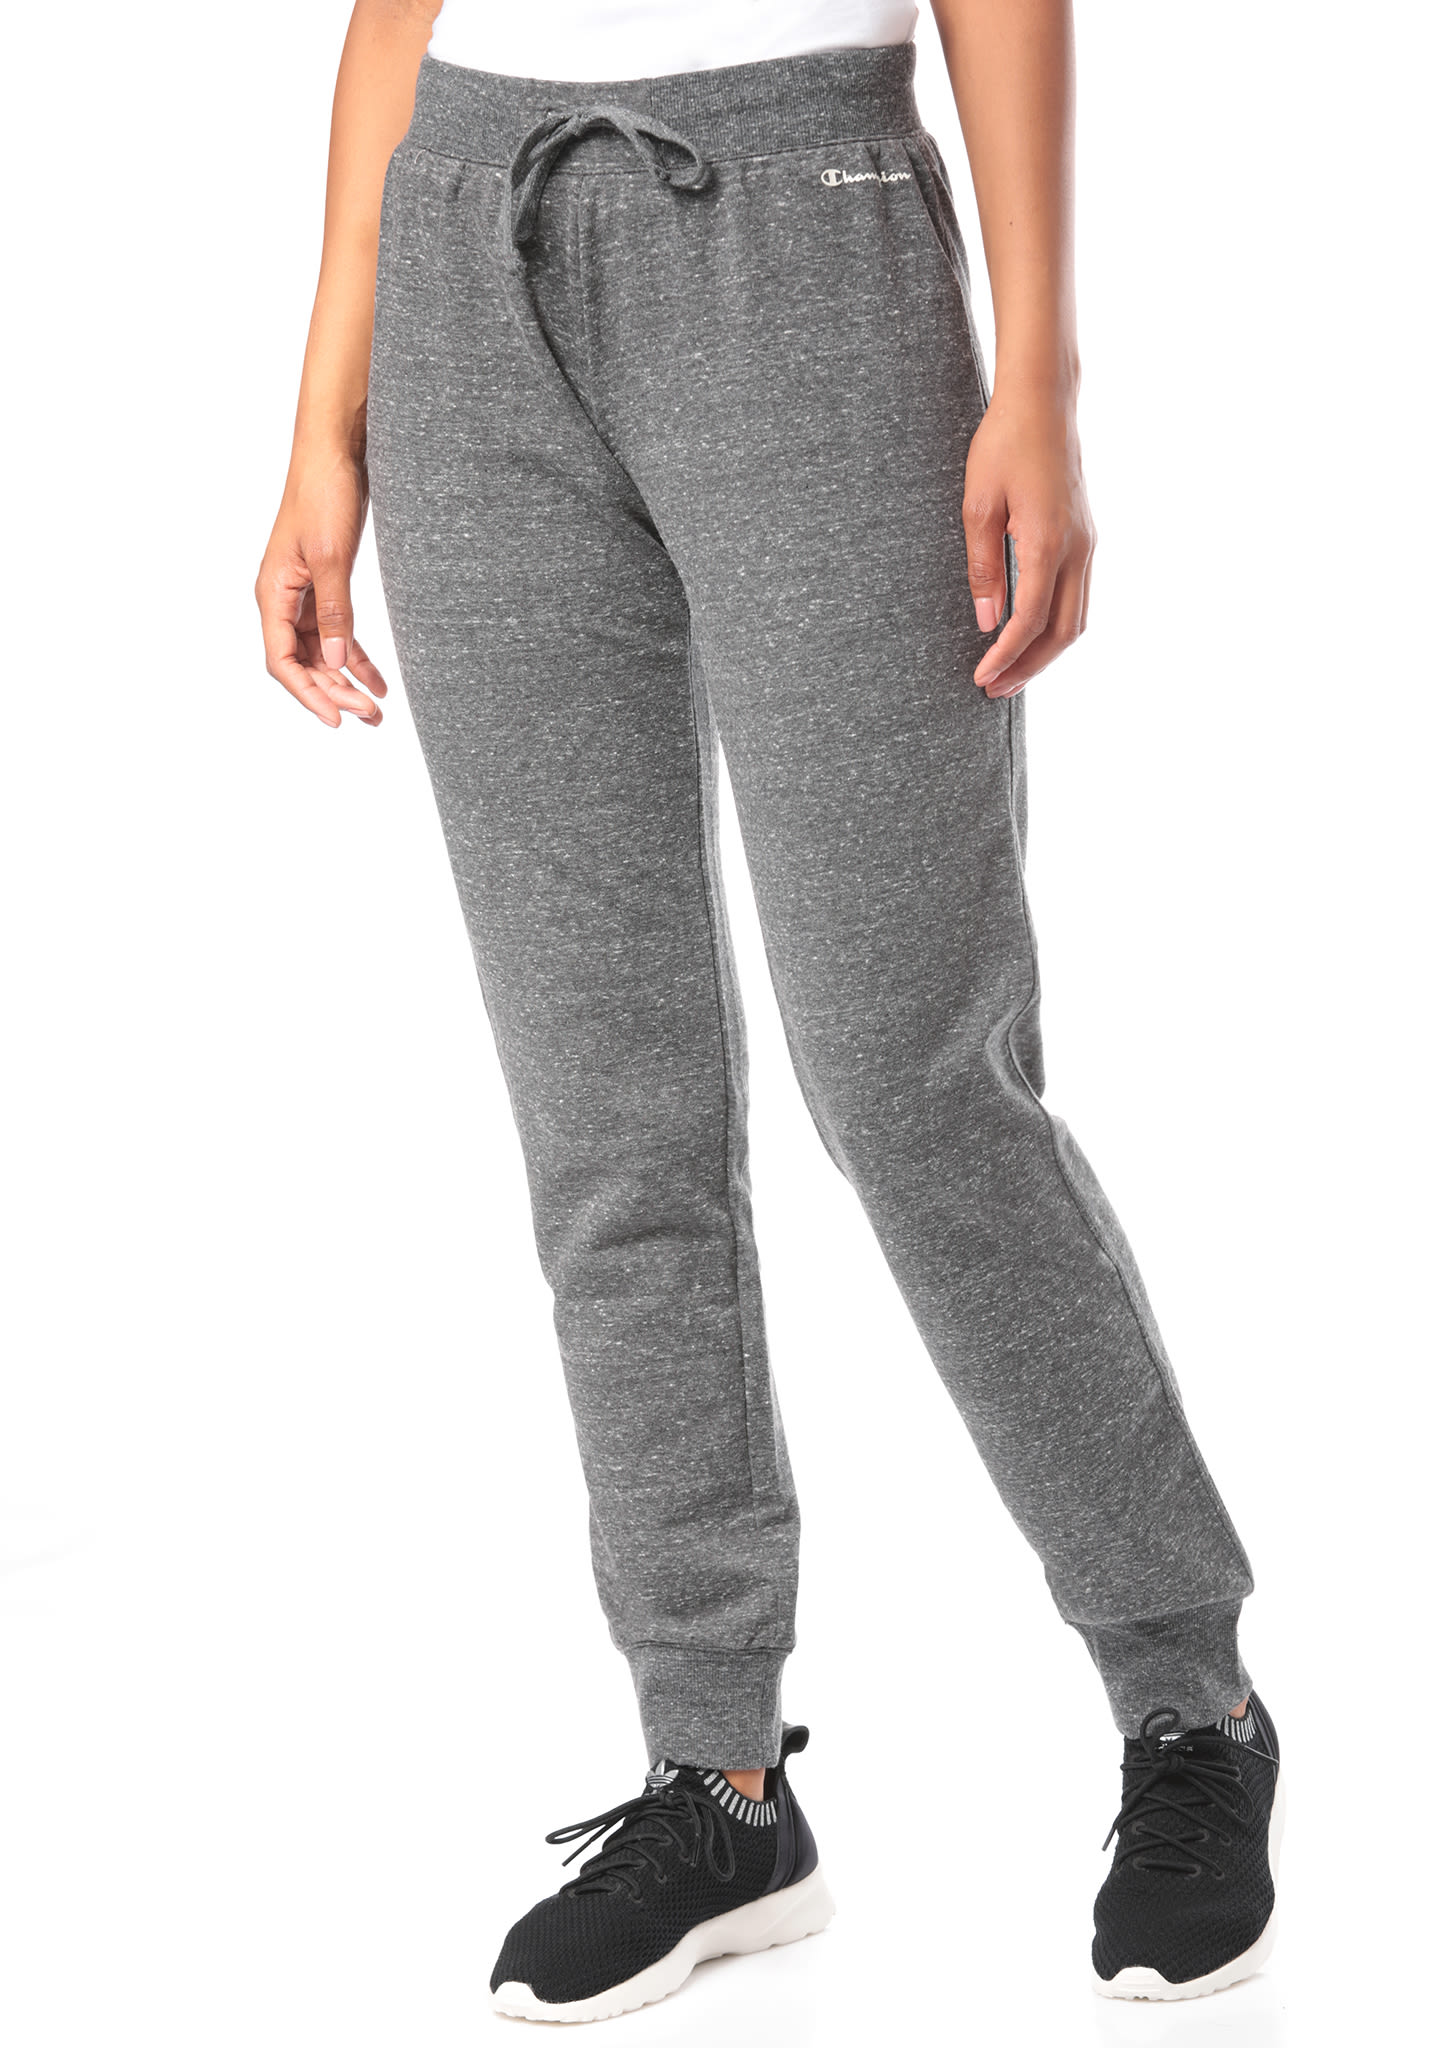 302196bb5e03 Champion Rib Cuff - Trackpants for Women - Grey - Planet Sports